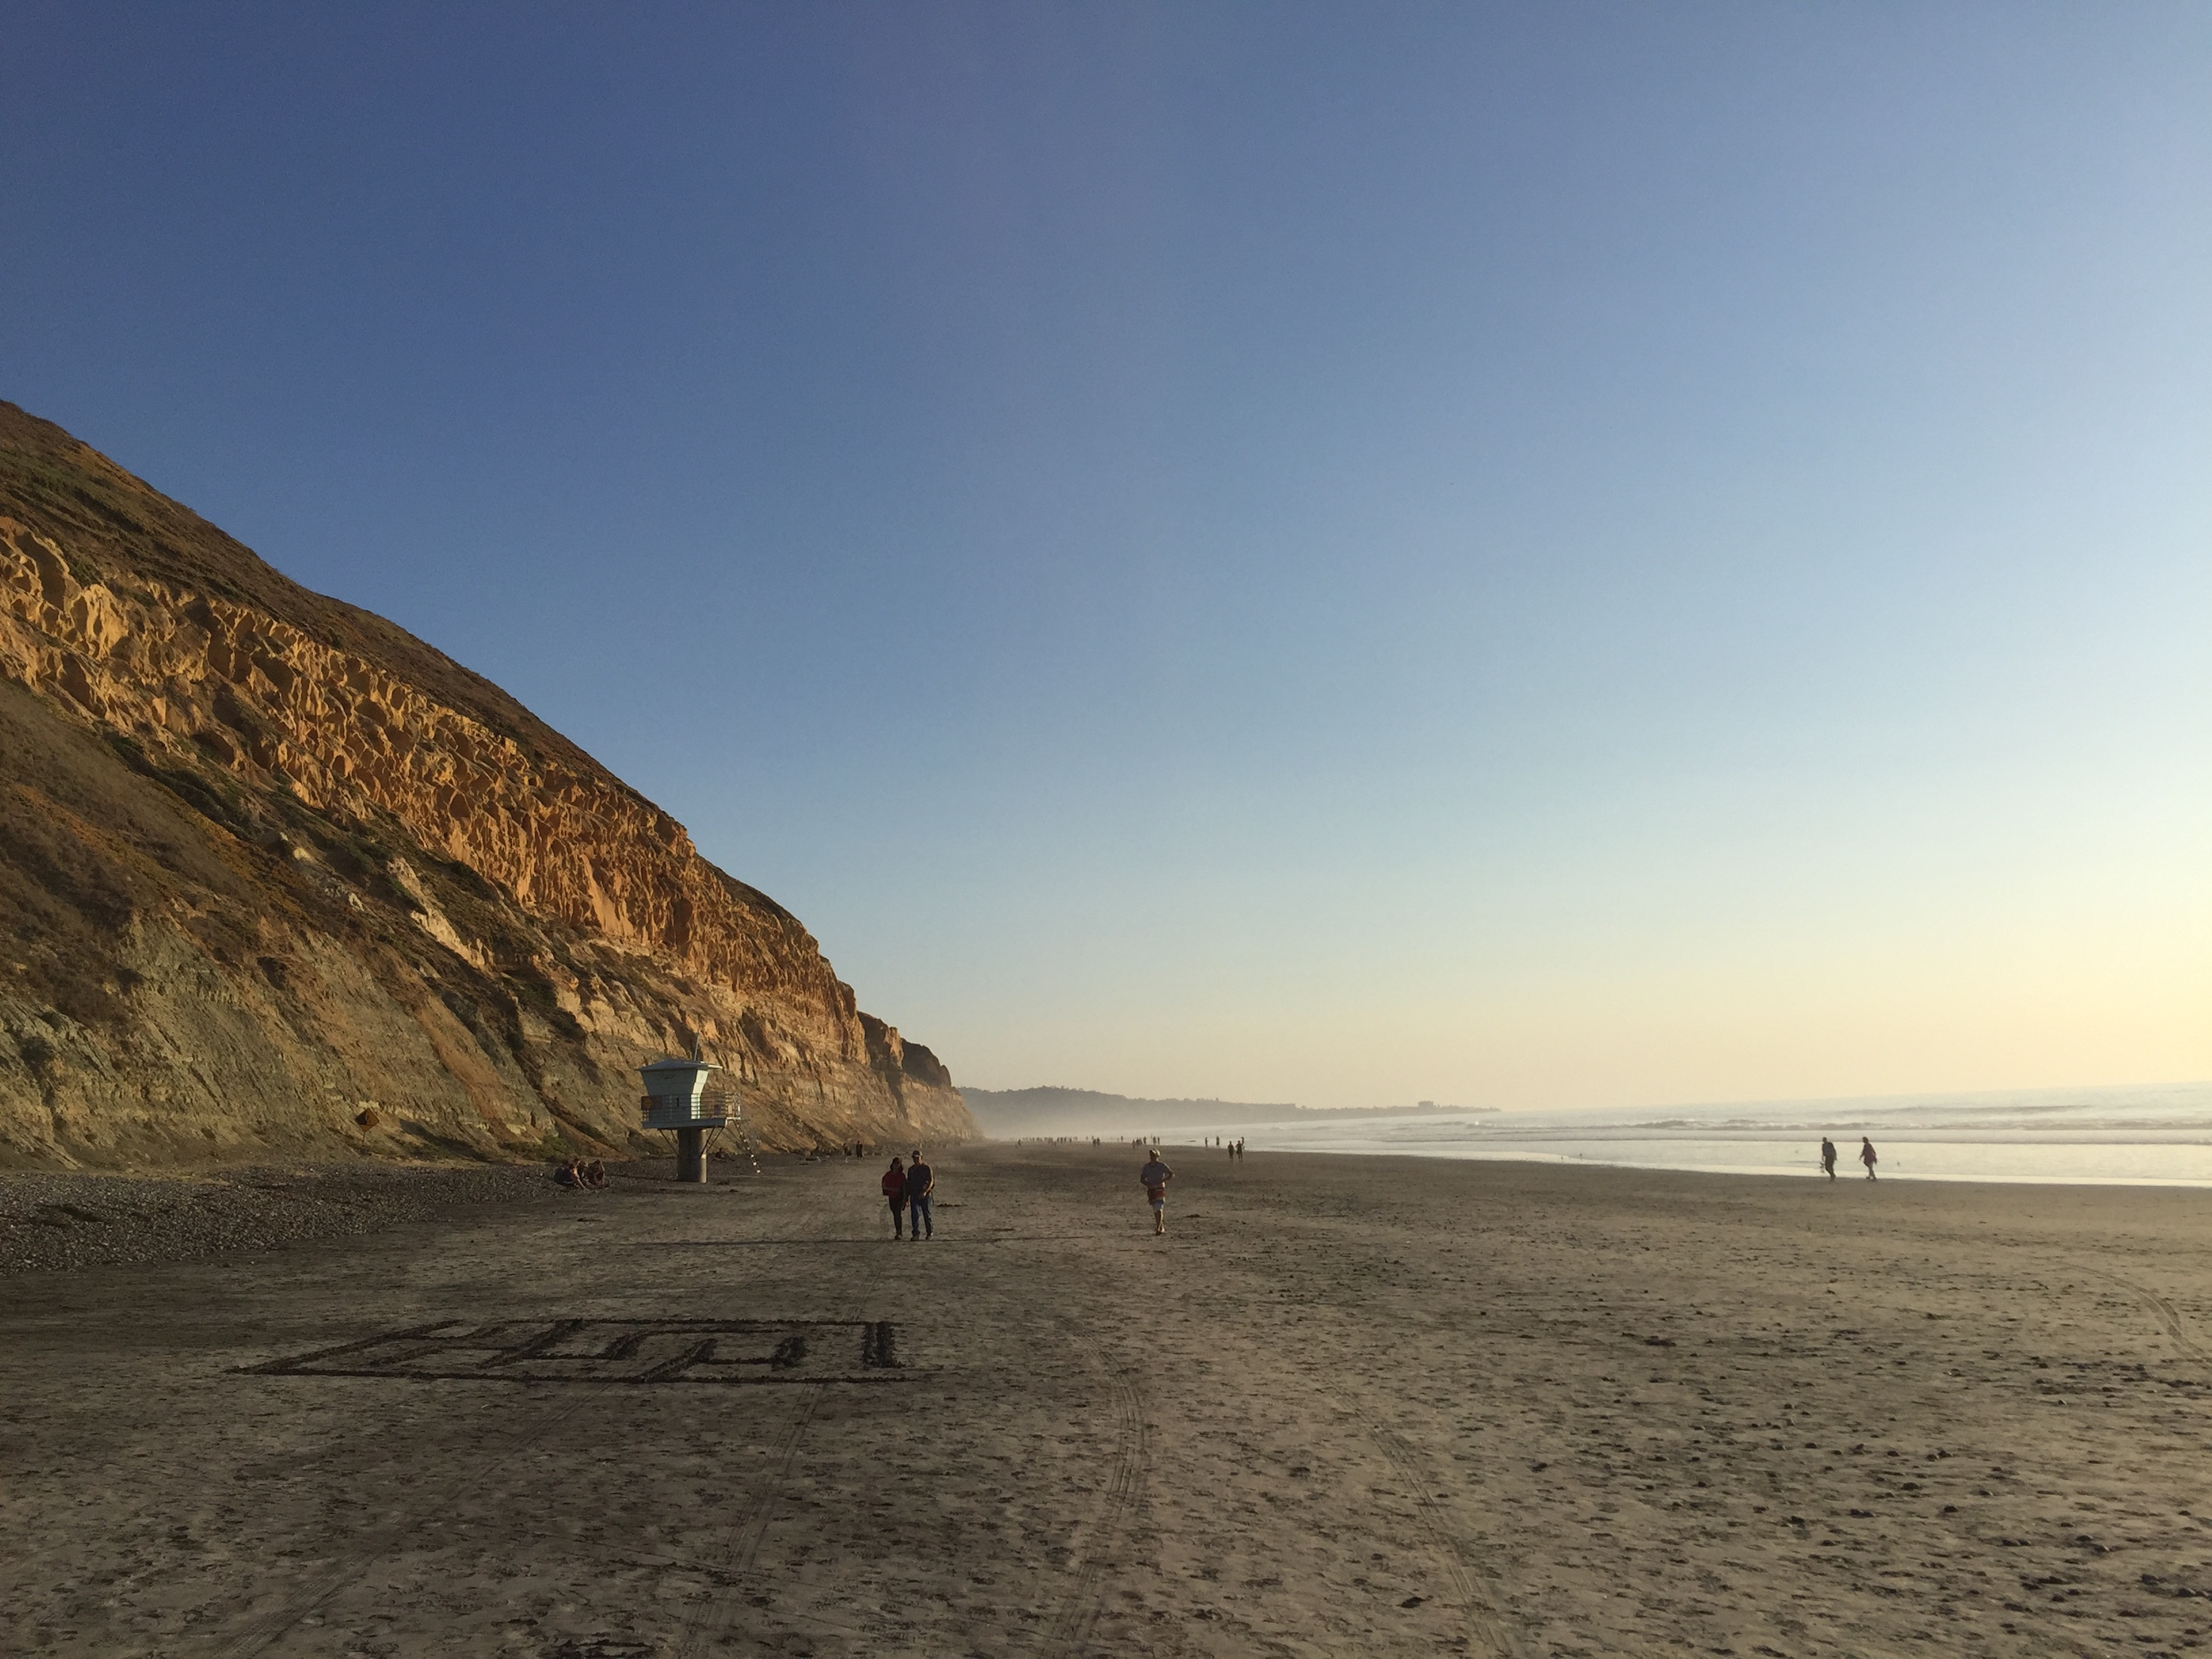 California has been adding sand to beaches for decades, and experts have recently analyzed such projects to gain a better understanding of how artificially-placed sand moves in response to waves and currents.